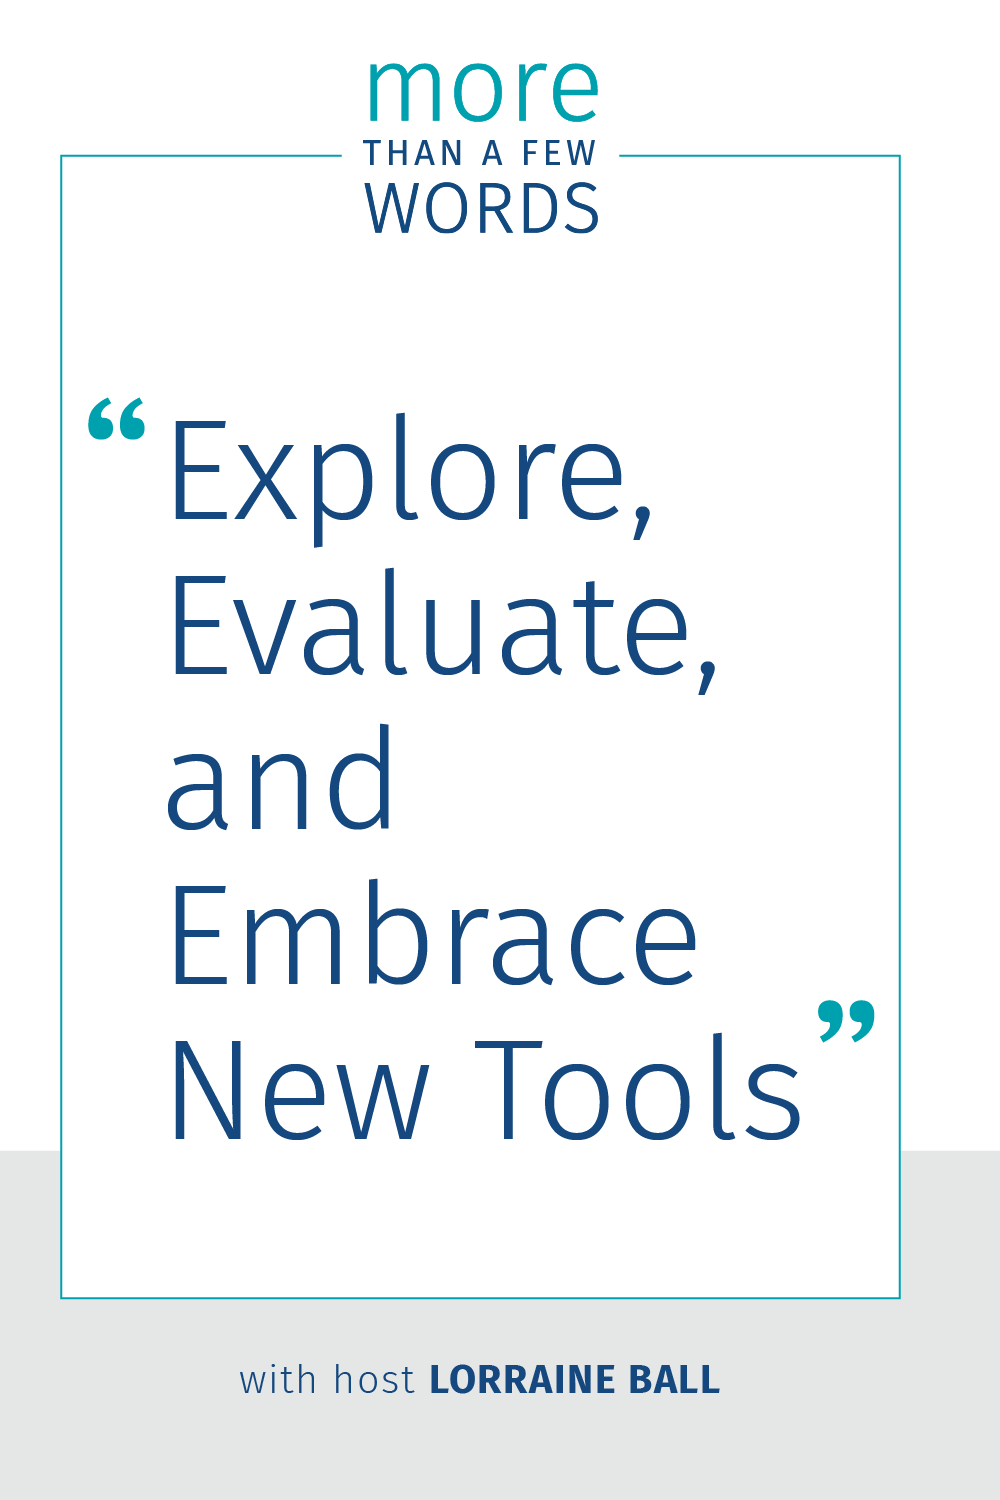 Explore and Evaluate new software tools